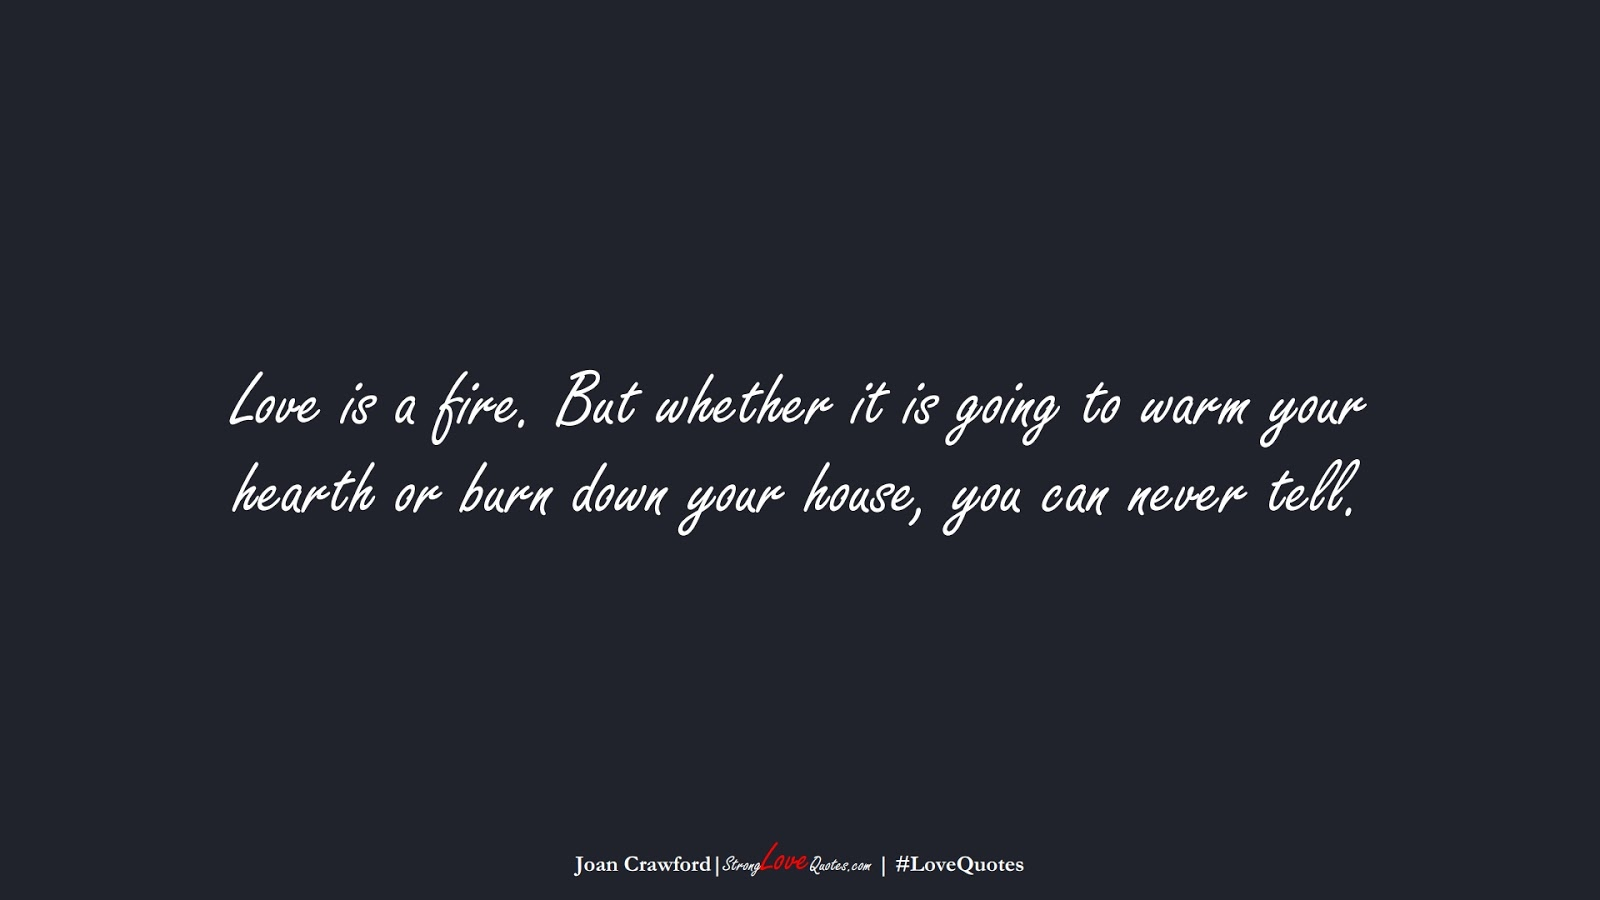 Love is a fire. But whether it is going to warm your hearth or burn down your house, you can never tell. (Joan Crawford);  #LoveQuotes